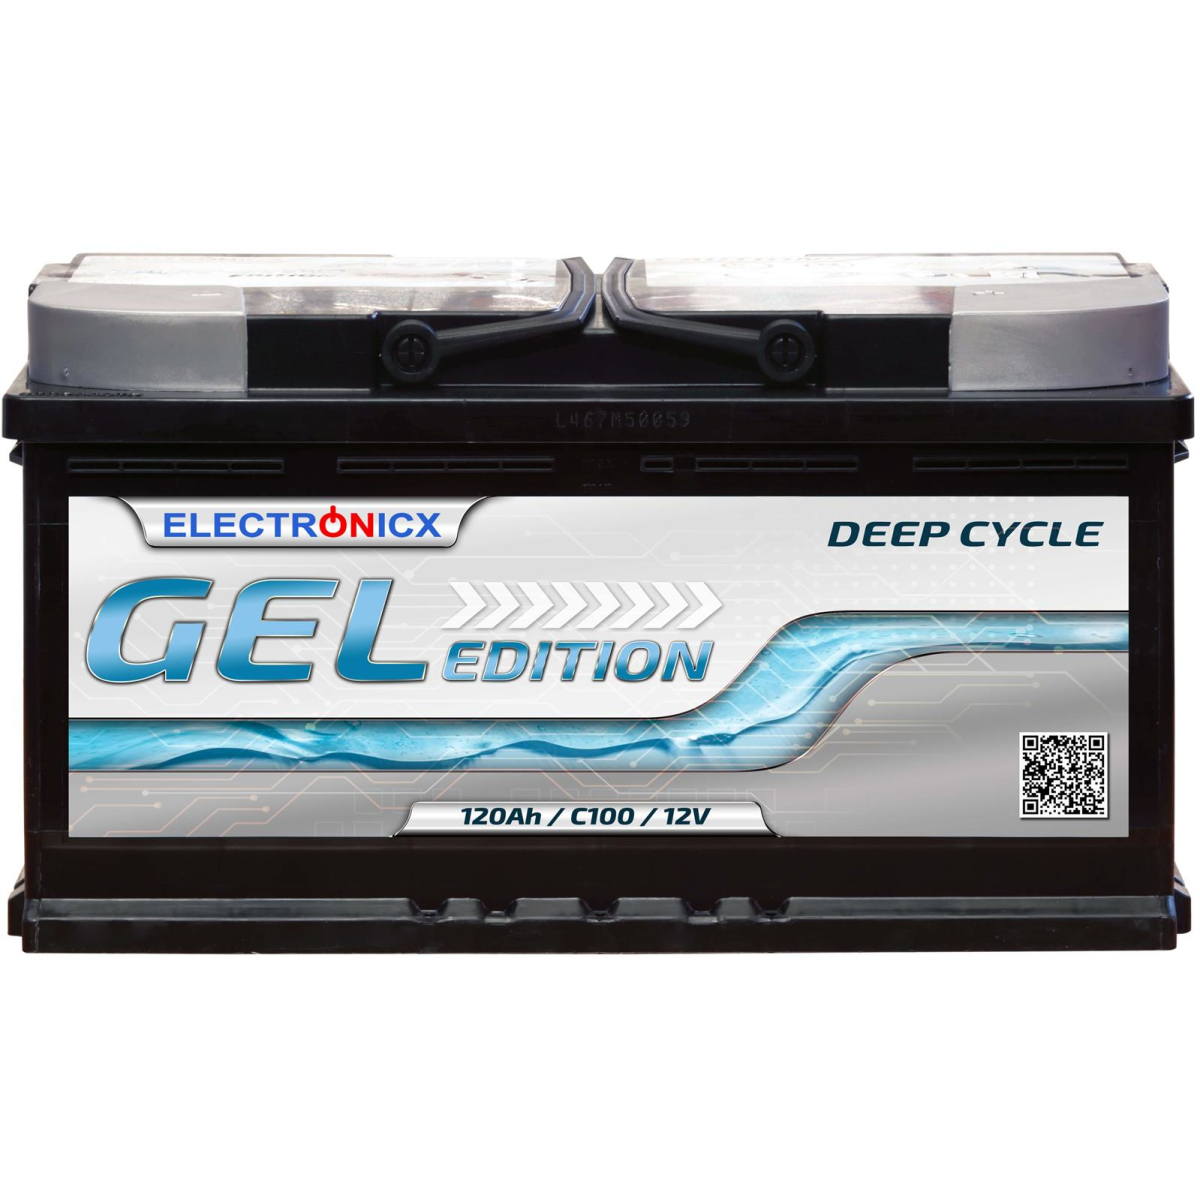 Electronicx Edition Gel Batterie 120 AH 12V Wohnmobil Boot Versorgung